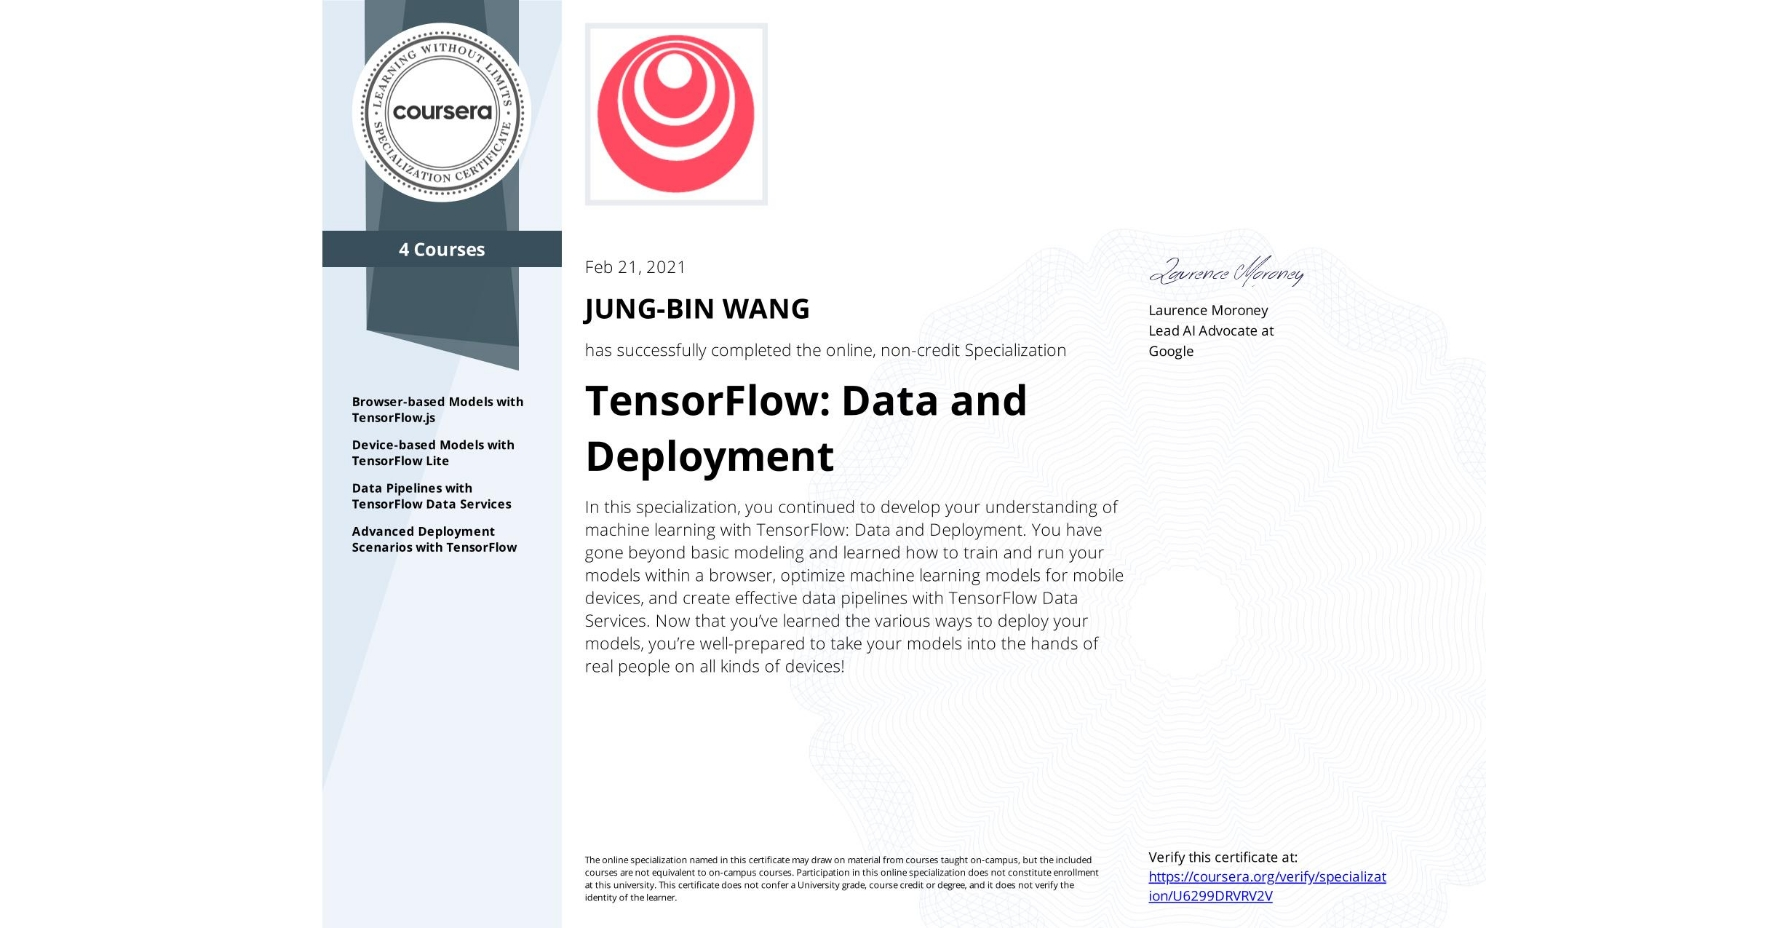 View certificate for JUNG-BIN WANG, TensorFlow: Data and Deployment, offered through Coursera. In this specialization, you continued to develop your understanding of machine learning with TensorFlow: Data and Deployment. You have gone beyond basic modeling and learned how to train and run your models within a browser, optimize machine learning models for mobile devices, and create effective data pipelines with TensorFlow Data Services. Now that you've learned the various ways to deploy your models, you're well-prepared to take your models into the hands of real people on all kinds of devices!